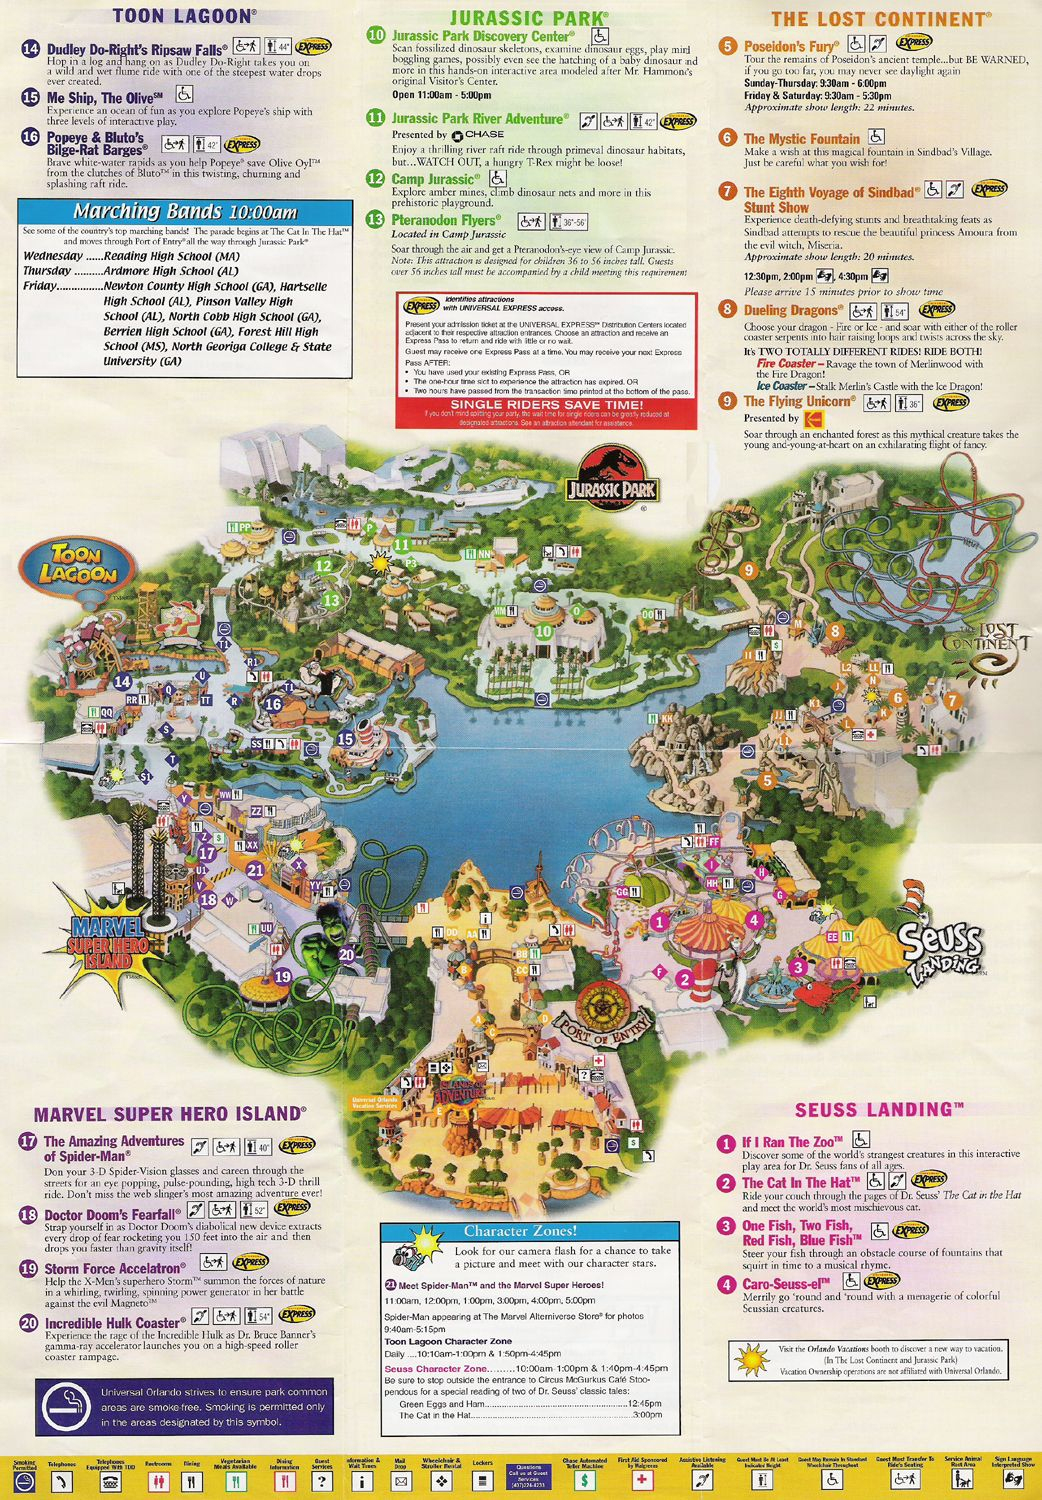 Universal Studios Orlando Map Of Area | Universal Studios Guide Map - Printable Map Of Universal Studios Orlando